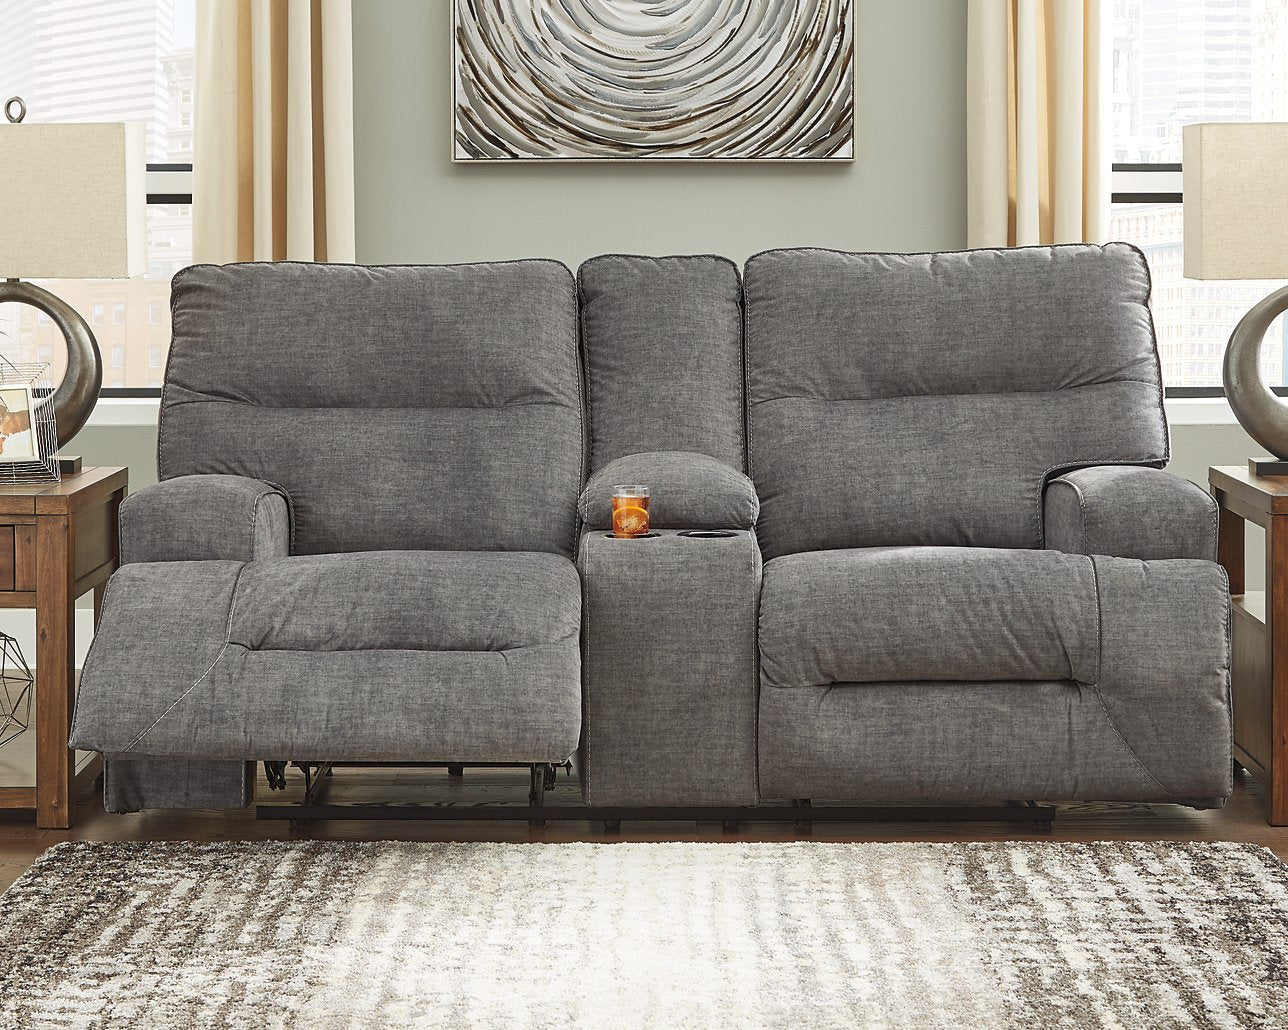 Coombs Signature Design by Ashley Loveseat image